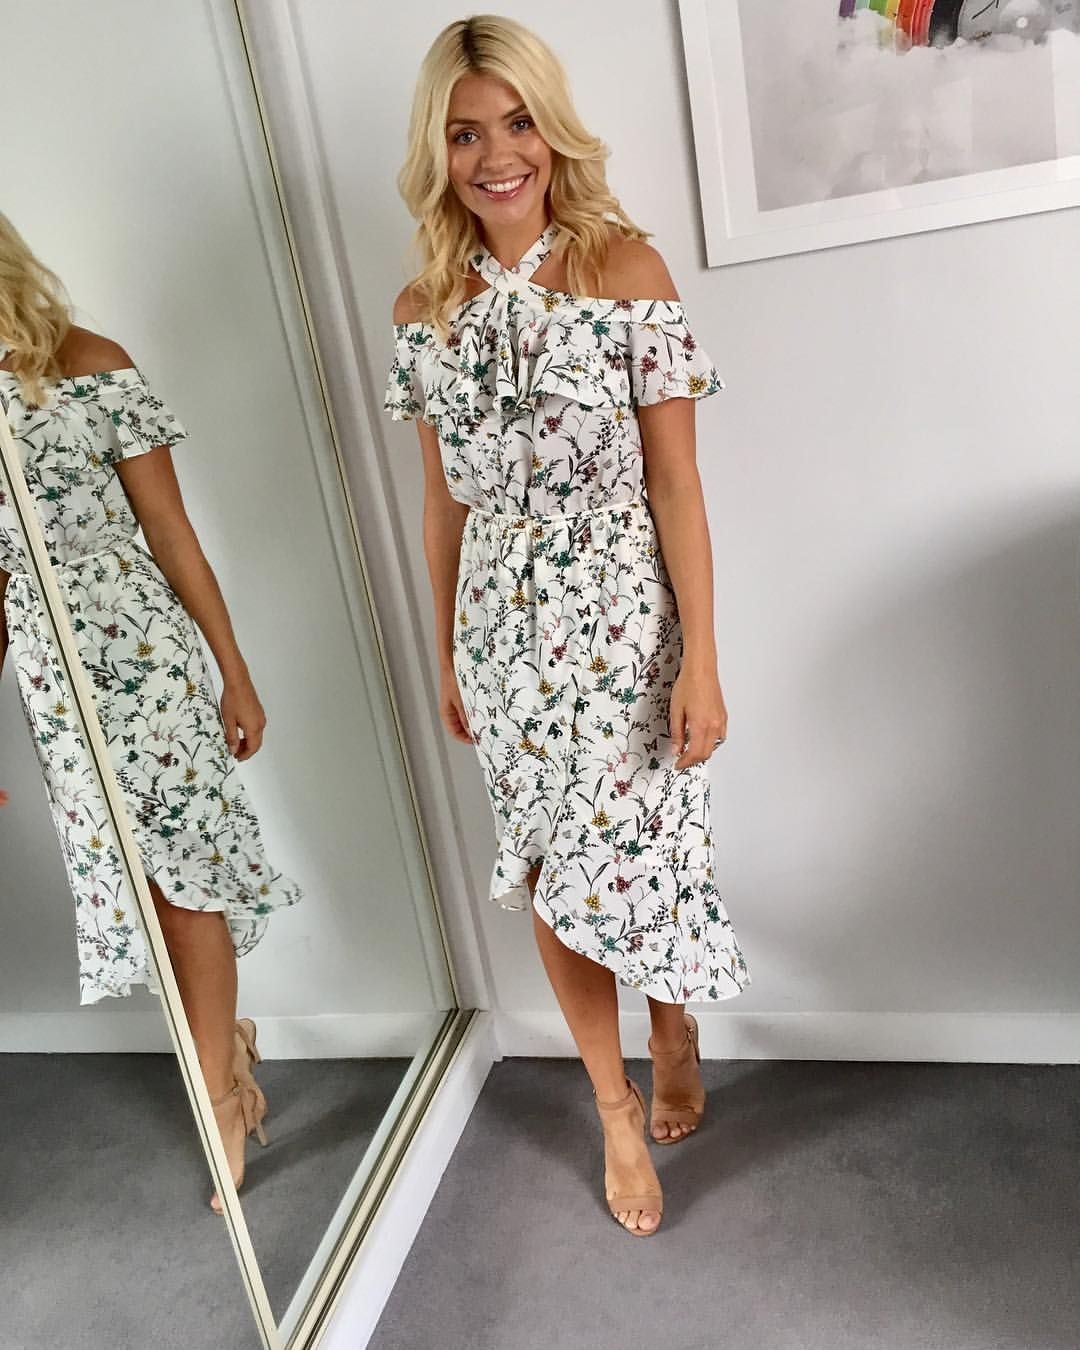 cfef51155bfa Pin by Aisling O' Callaghan on Holly Willoughby in 2019 | Holly willoughby  outfits, Holly willoughby style, Holly willoughby